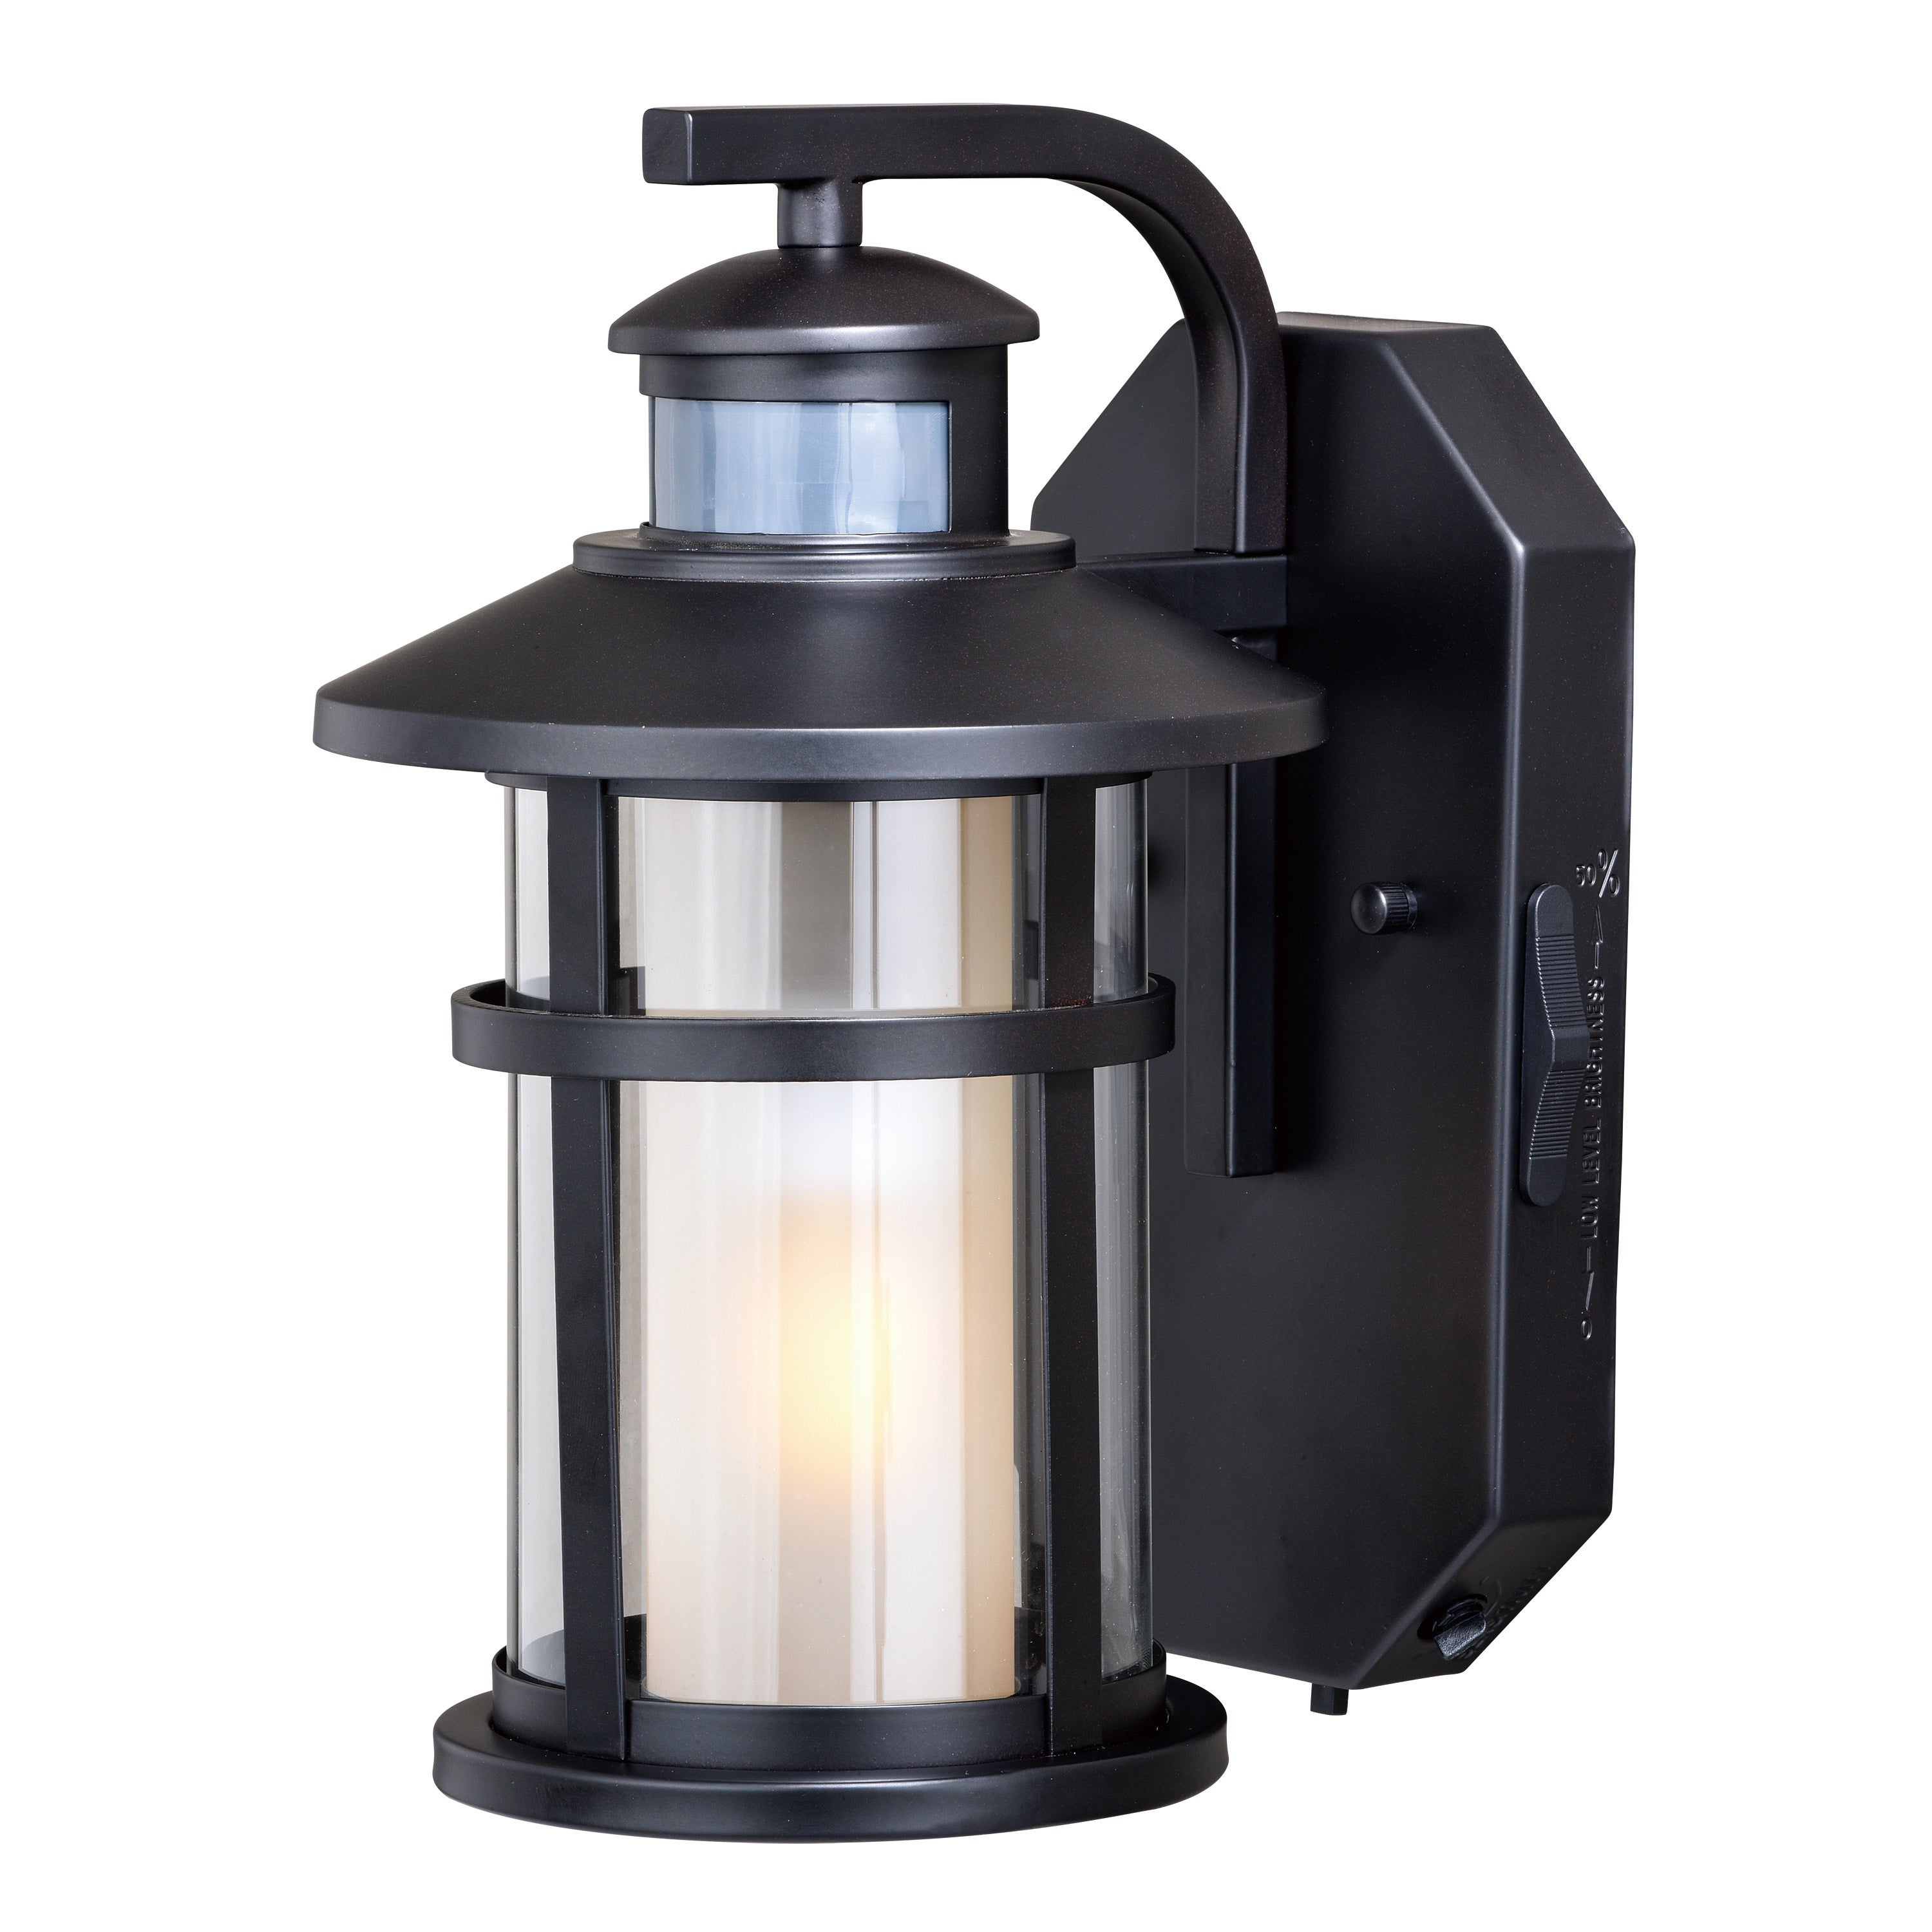 Image of: Shop Black Friday Deals On Cadiz Bronze Motion Sensor Dusk To Dawn Mission Outdoor Wall Light 6 5 In W X 10 5 In H X 8 5 In D Overstock 20876983